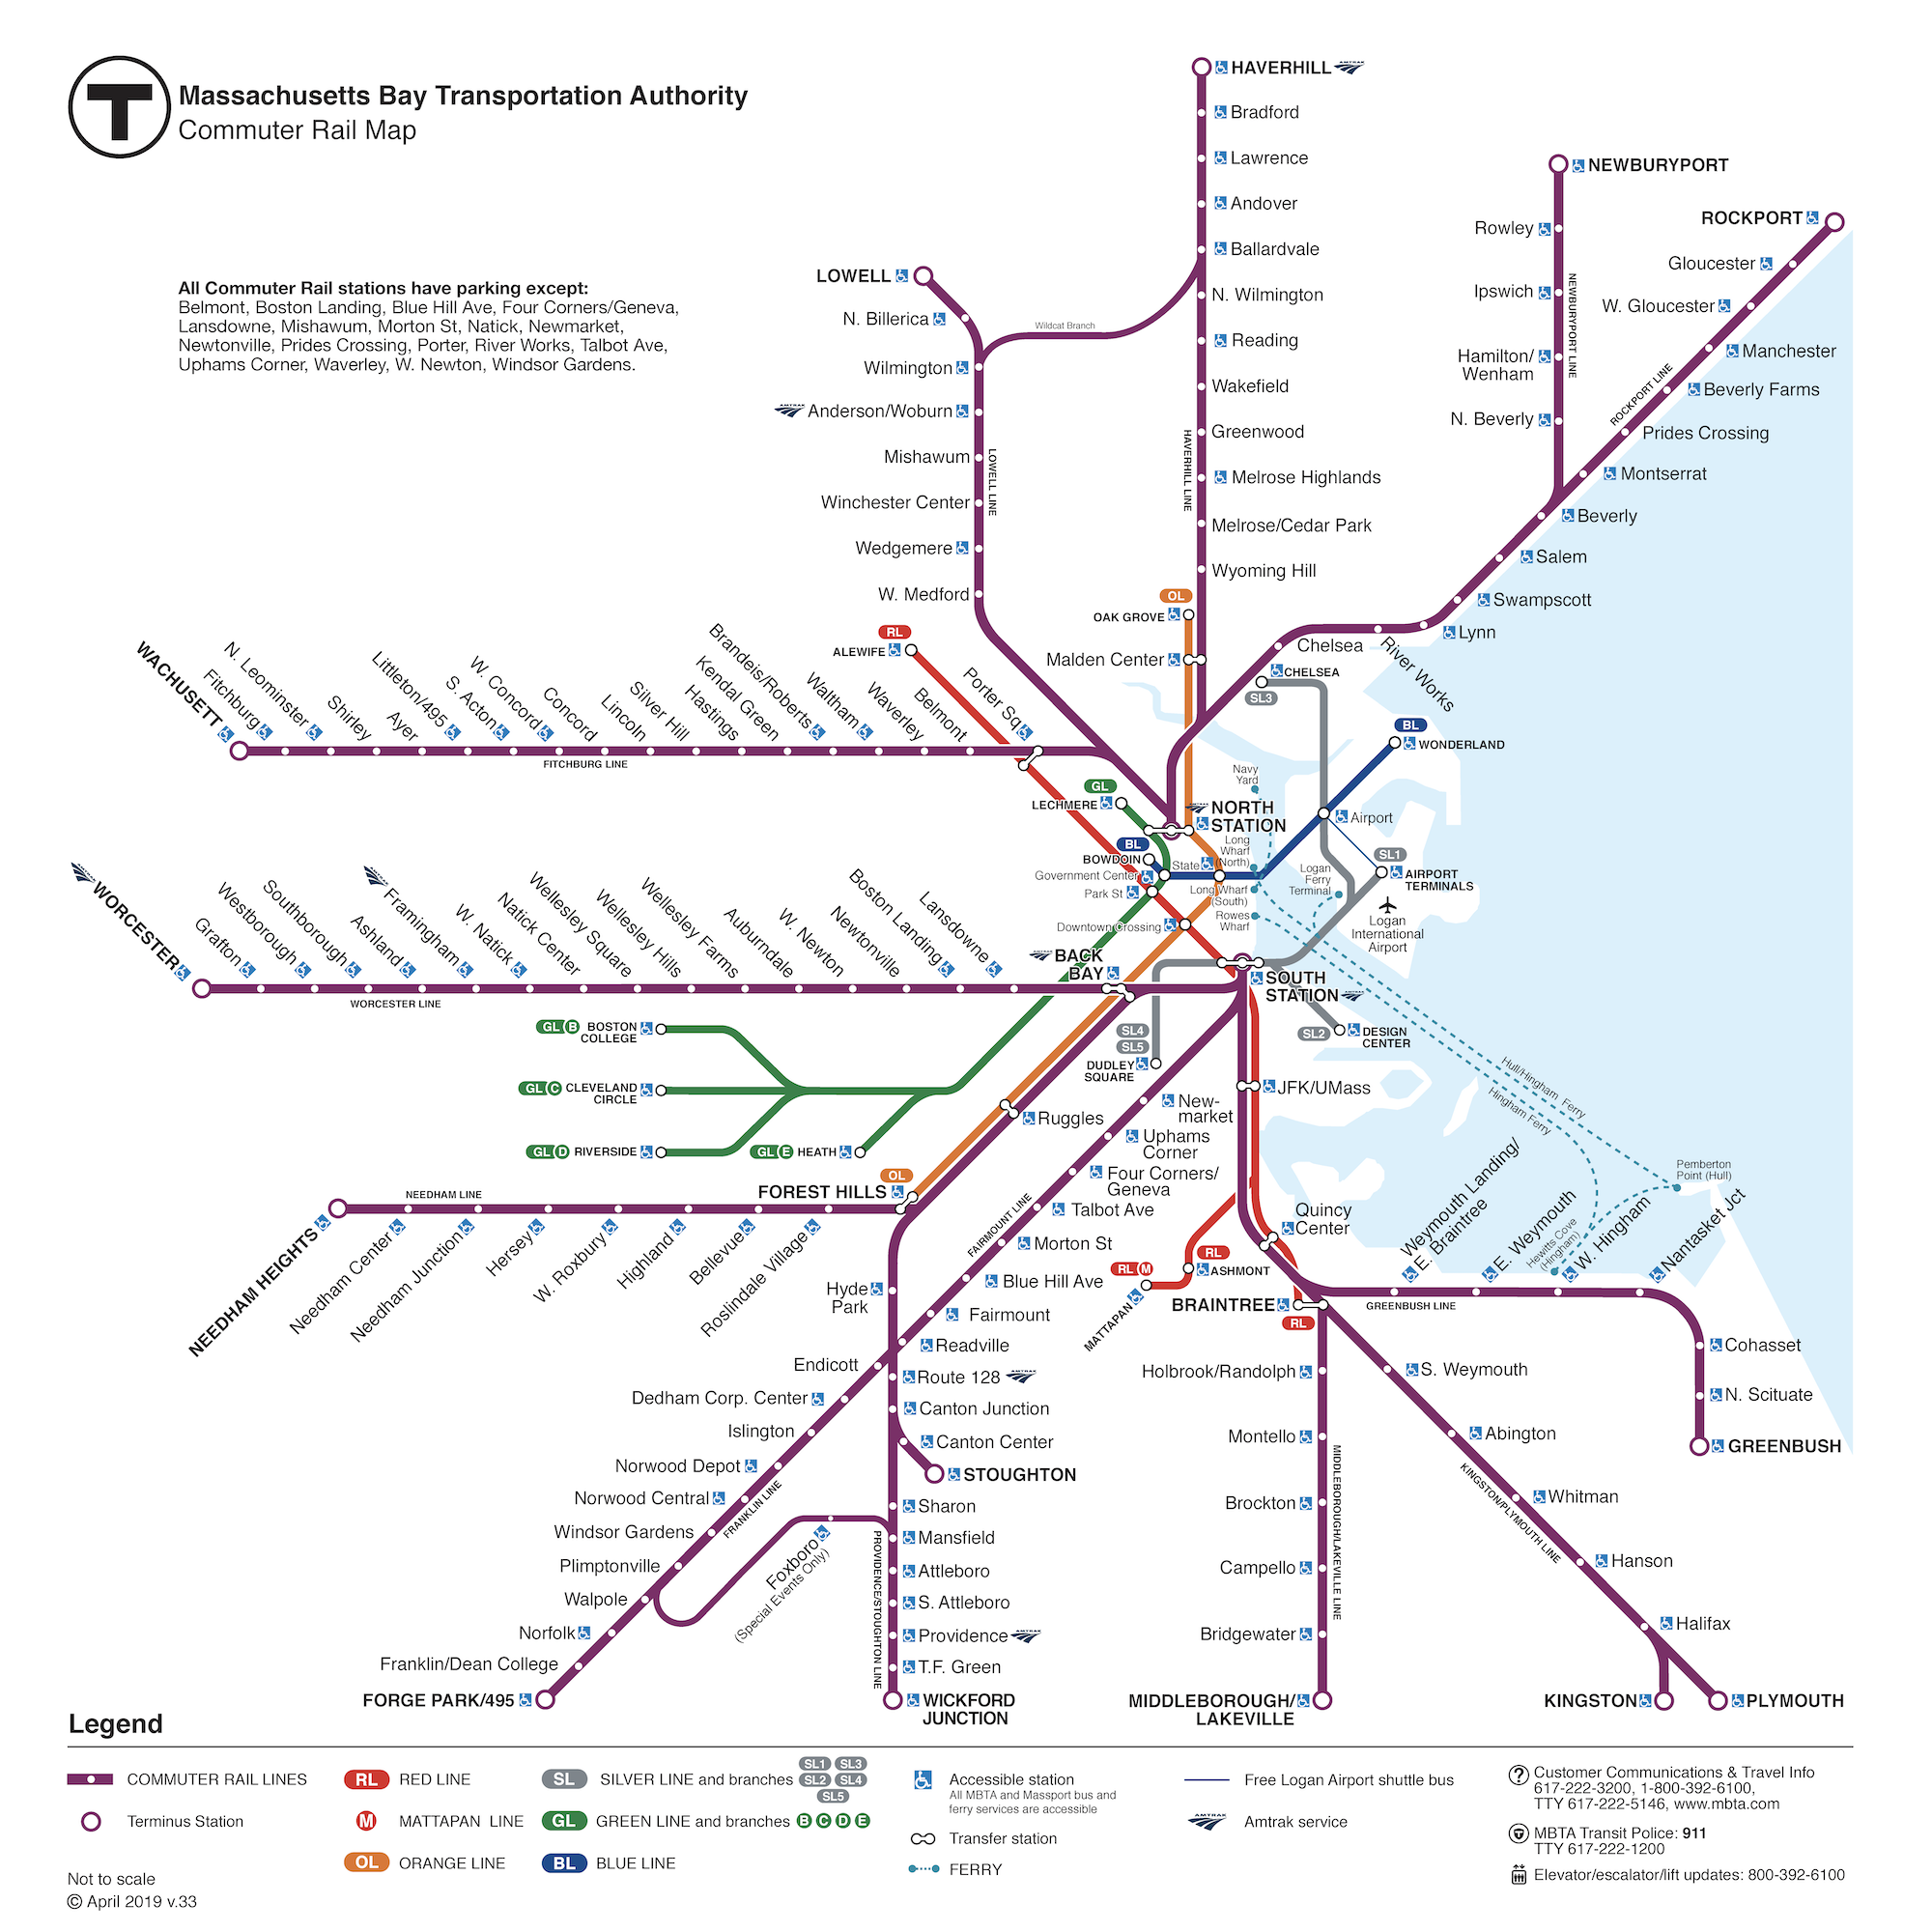 Map of all Commuter Rail lines, with subway lines also featured less prominently.